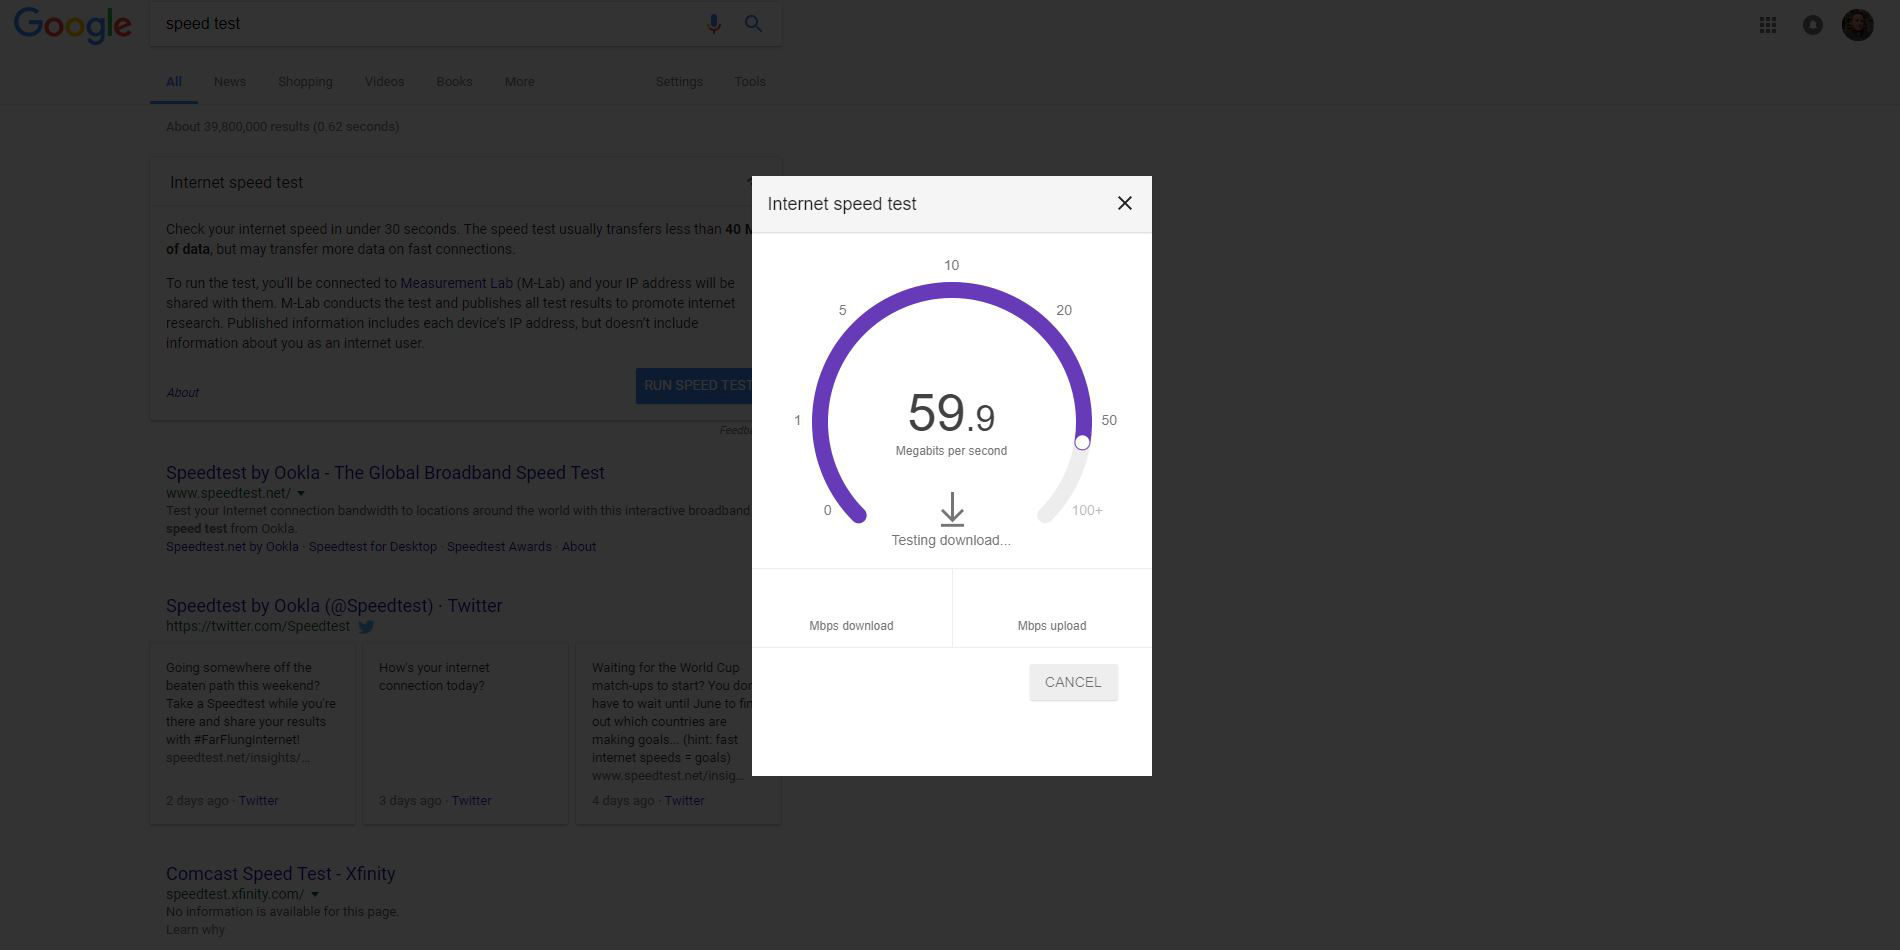 How to check your internet speed right from Google's homepage